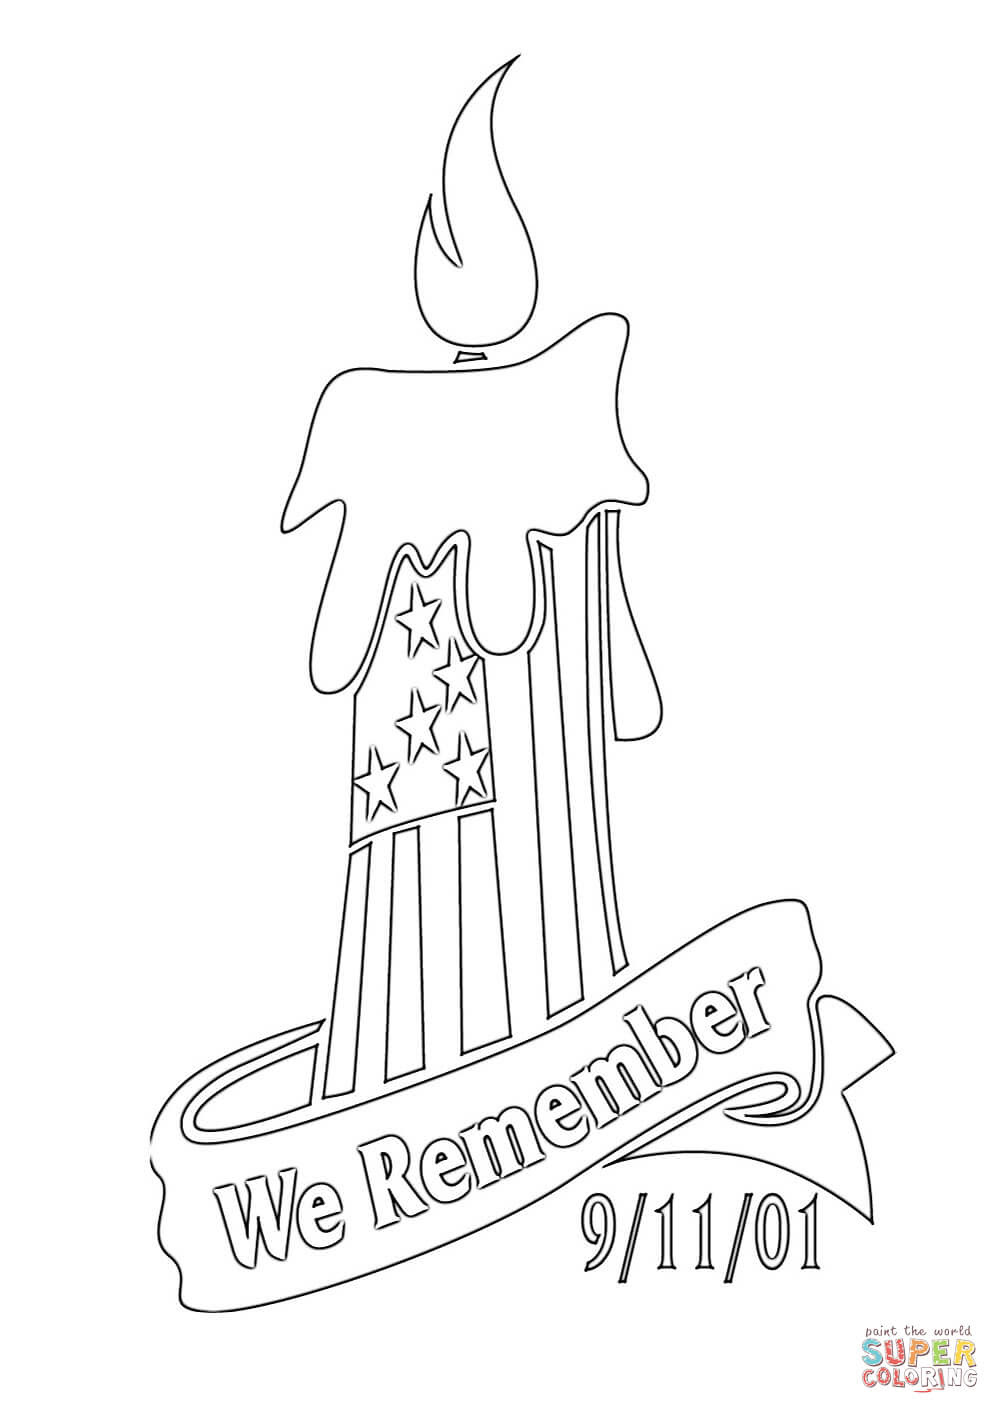 We Remember 9-11-01 coloring page | Free Printable Coloring Pages